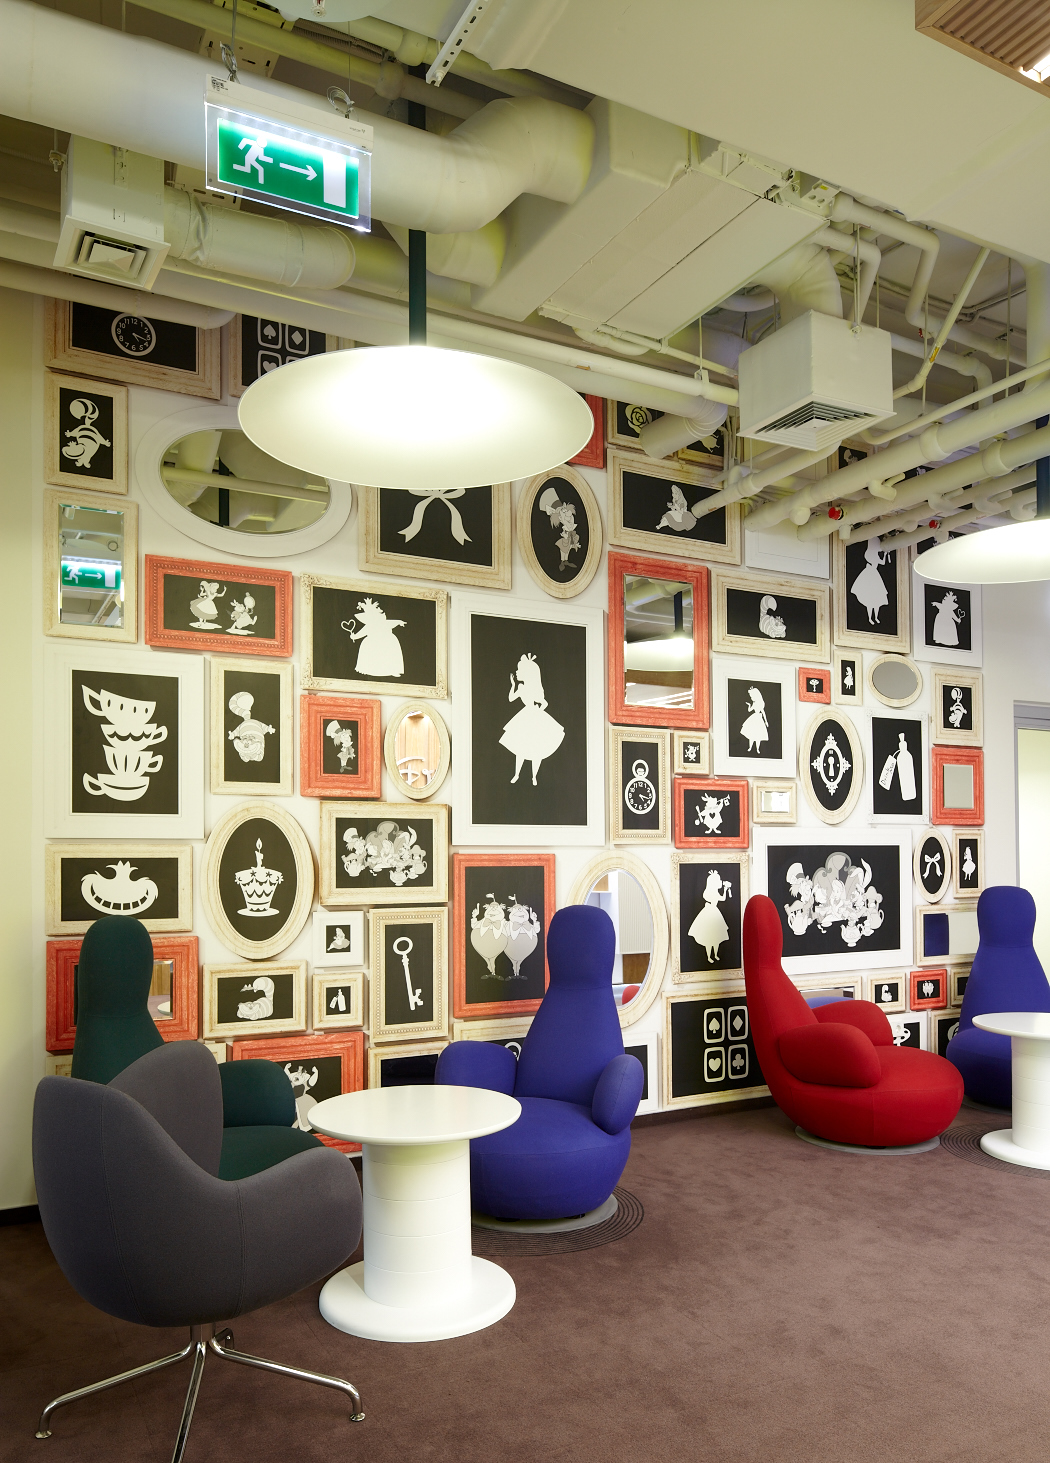 Disneys moscow offices by unk project officelovin39 for Disney office decor